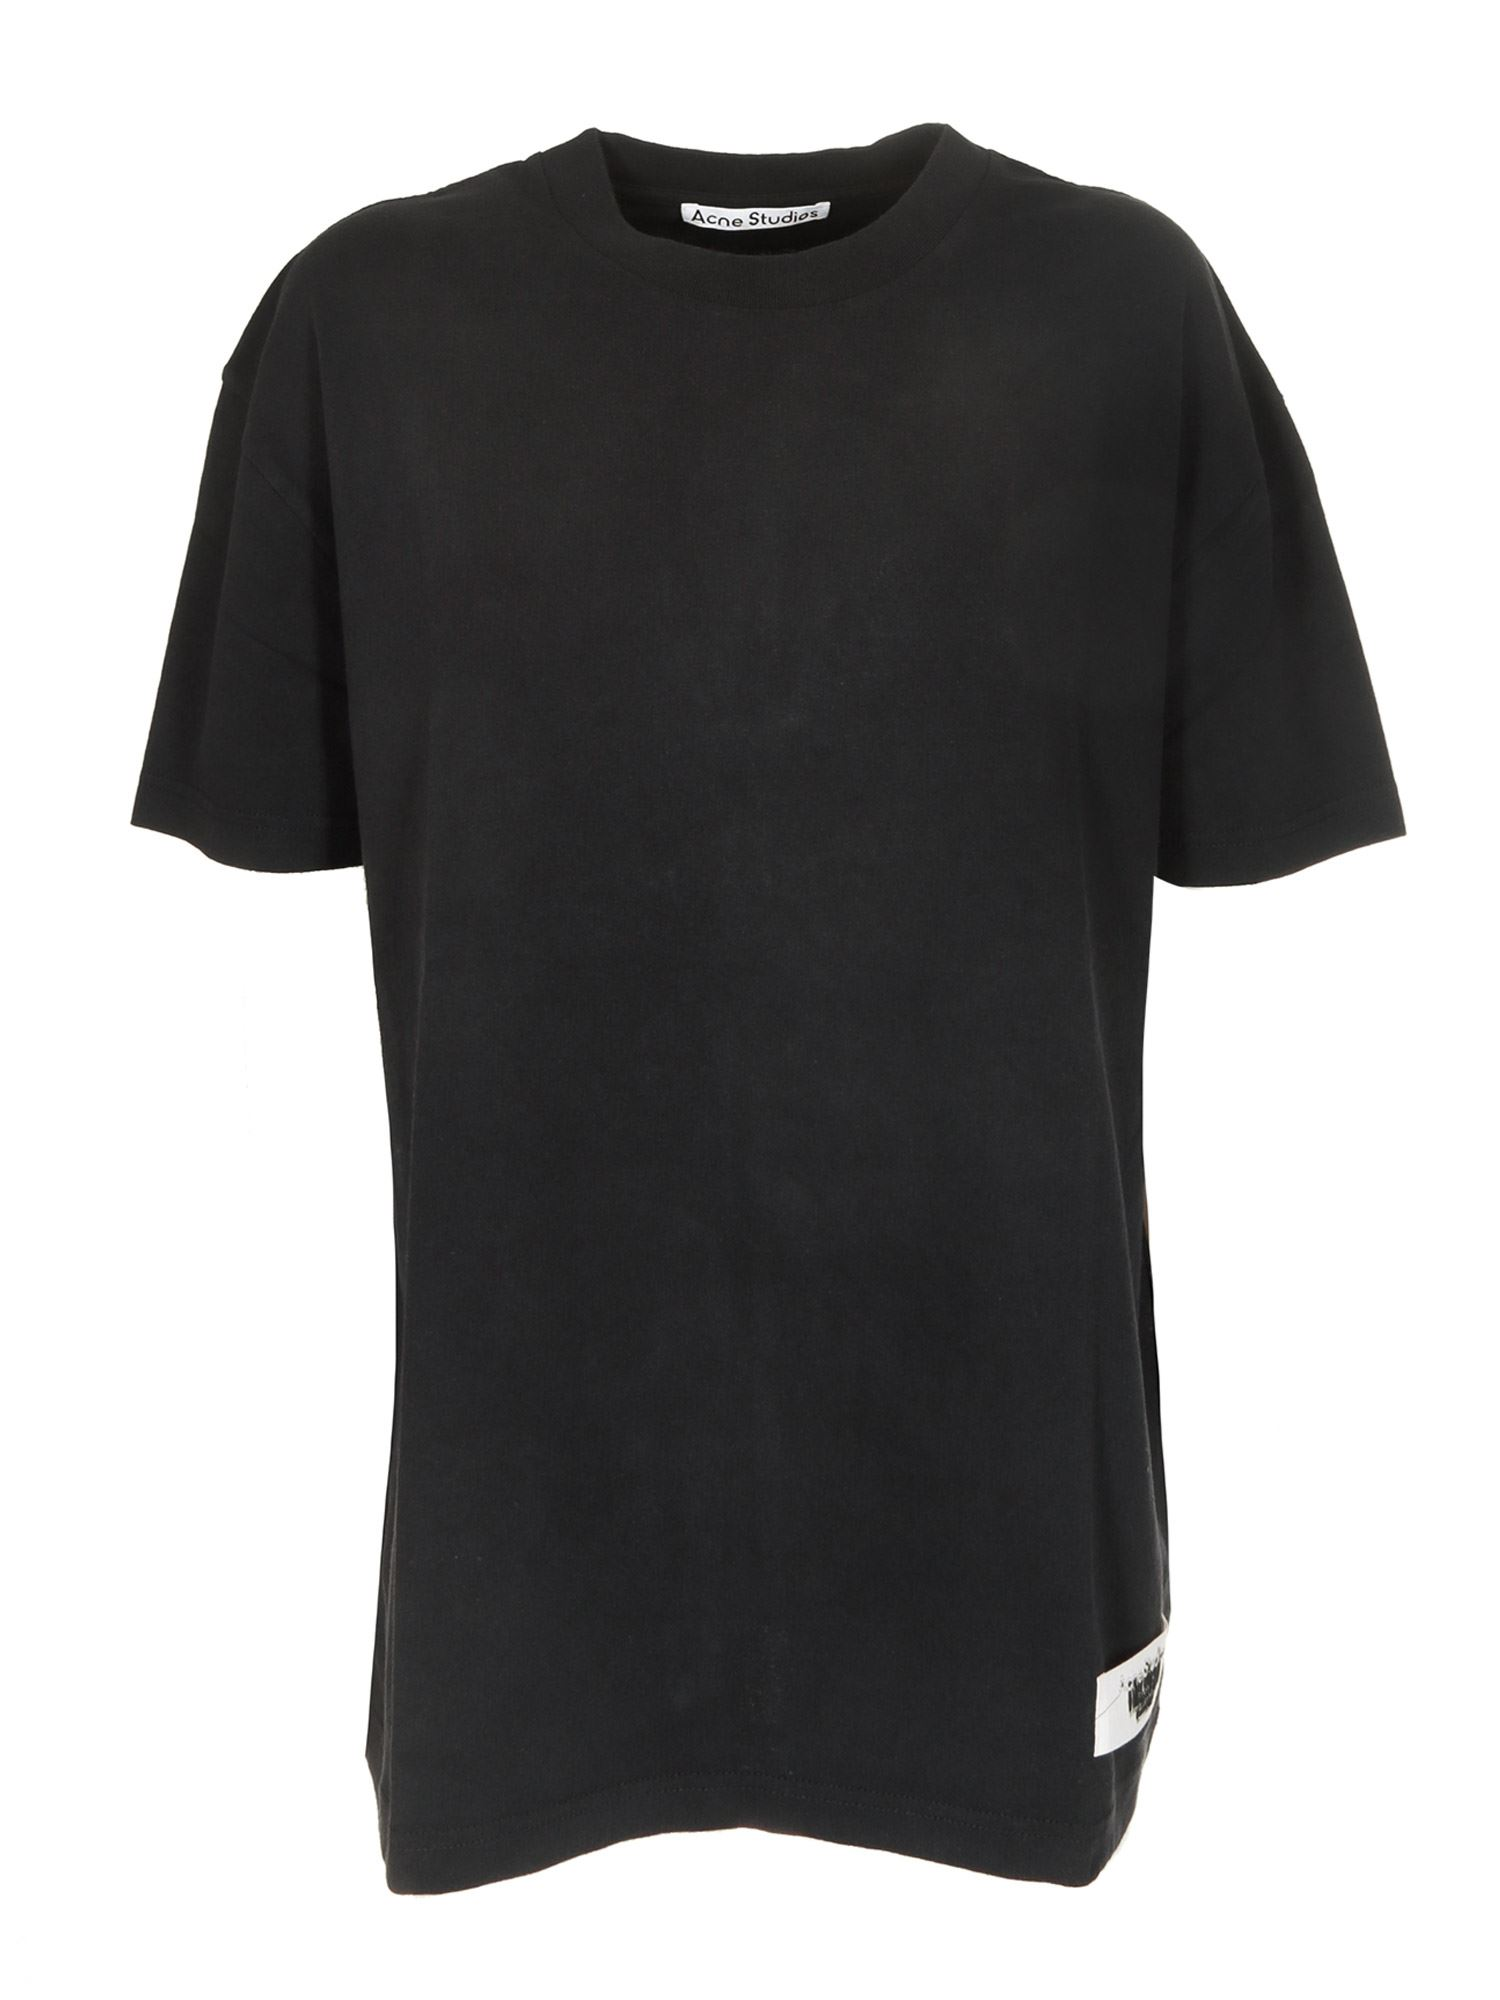 Acne Studios NEW LOGO T-SHIRT IN BLACK